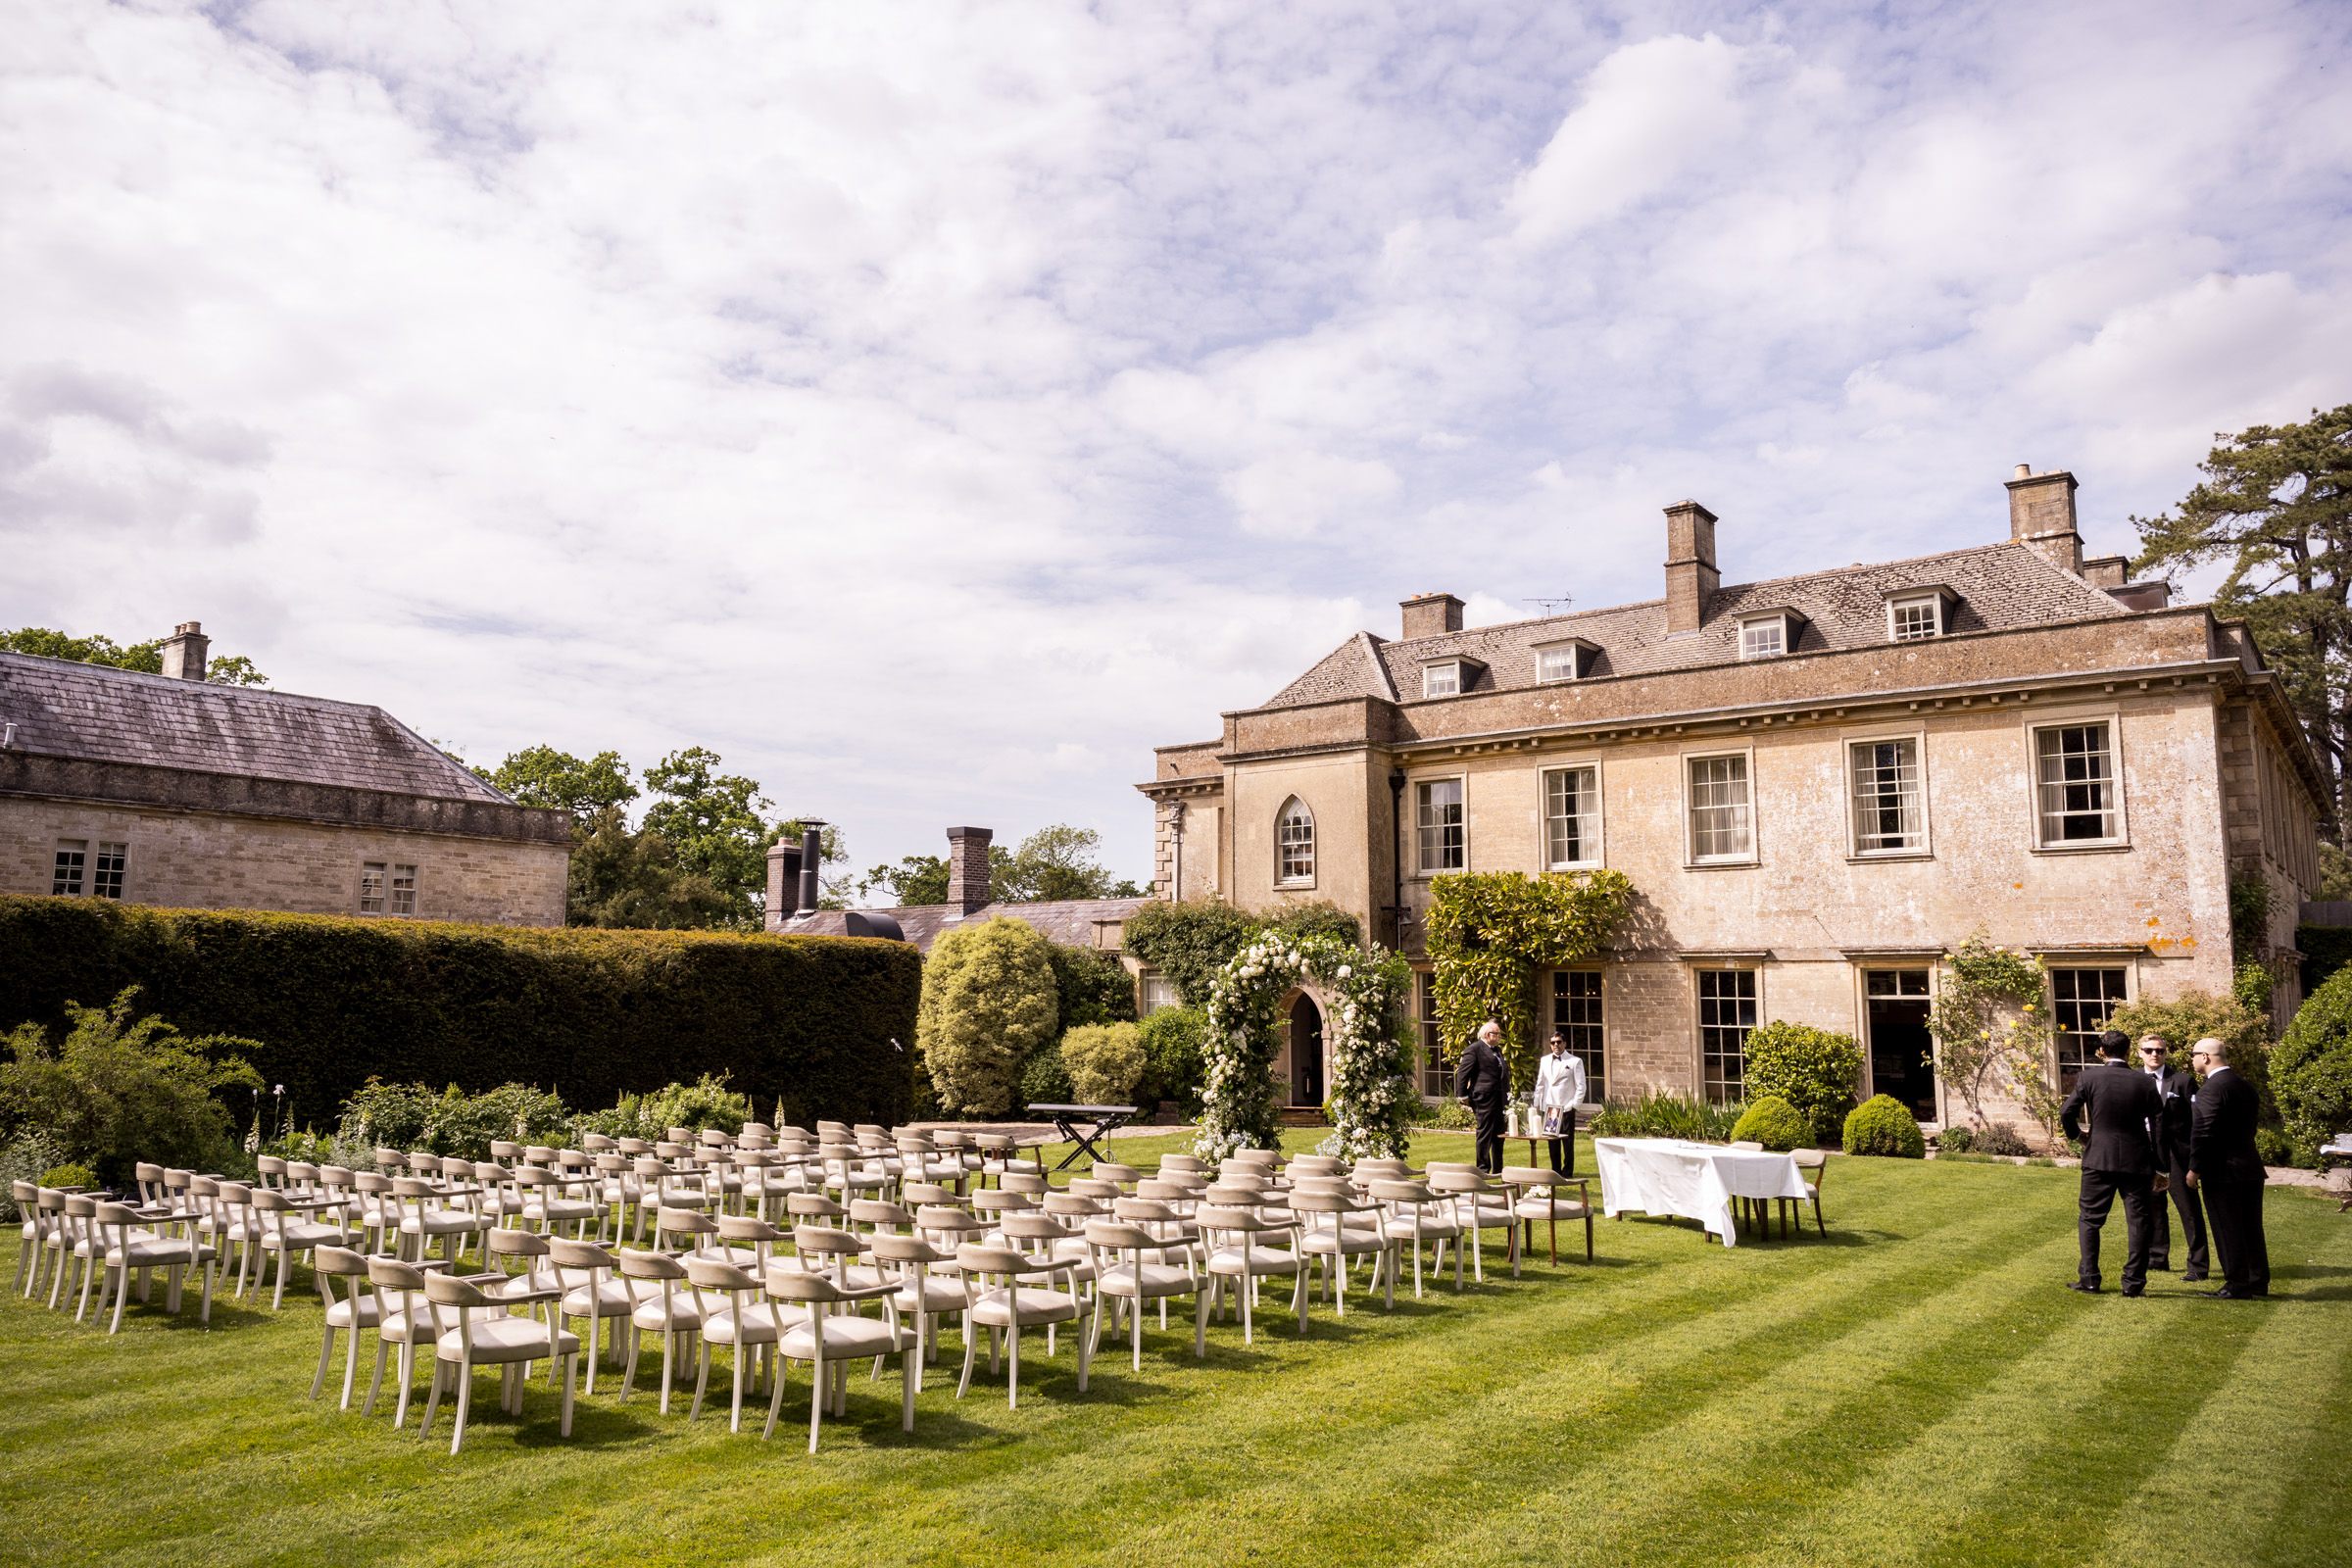 Babington House Outdoor Civil Ceremony and Wedding Day 007.jpg